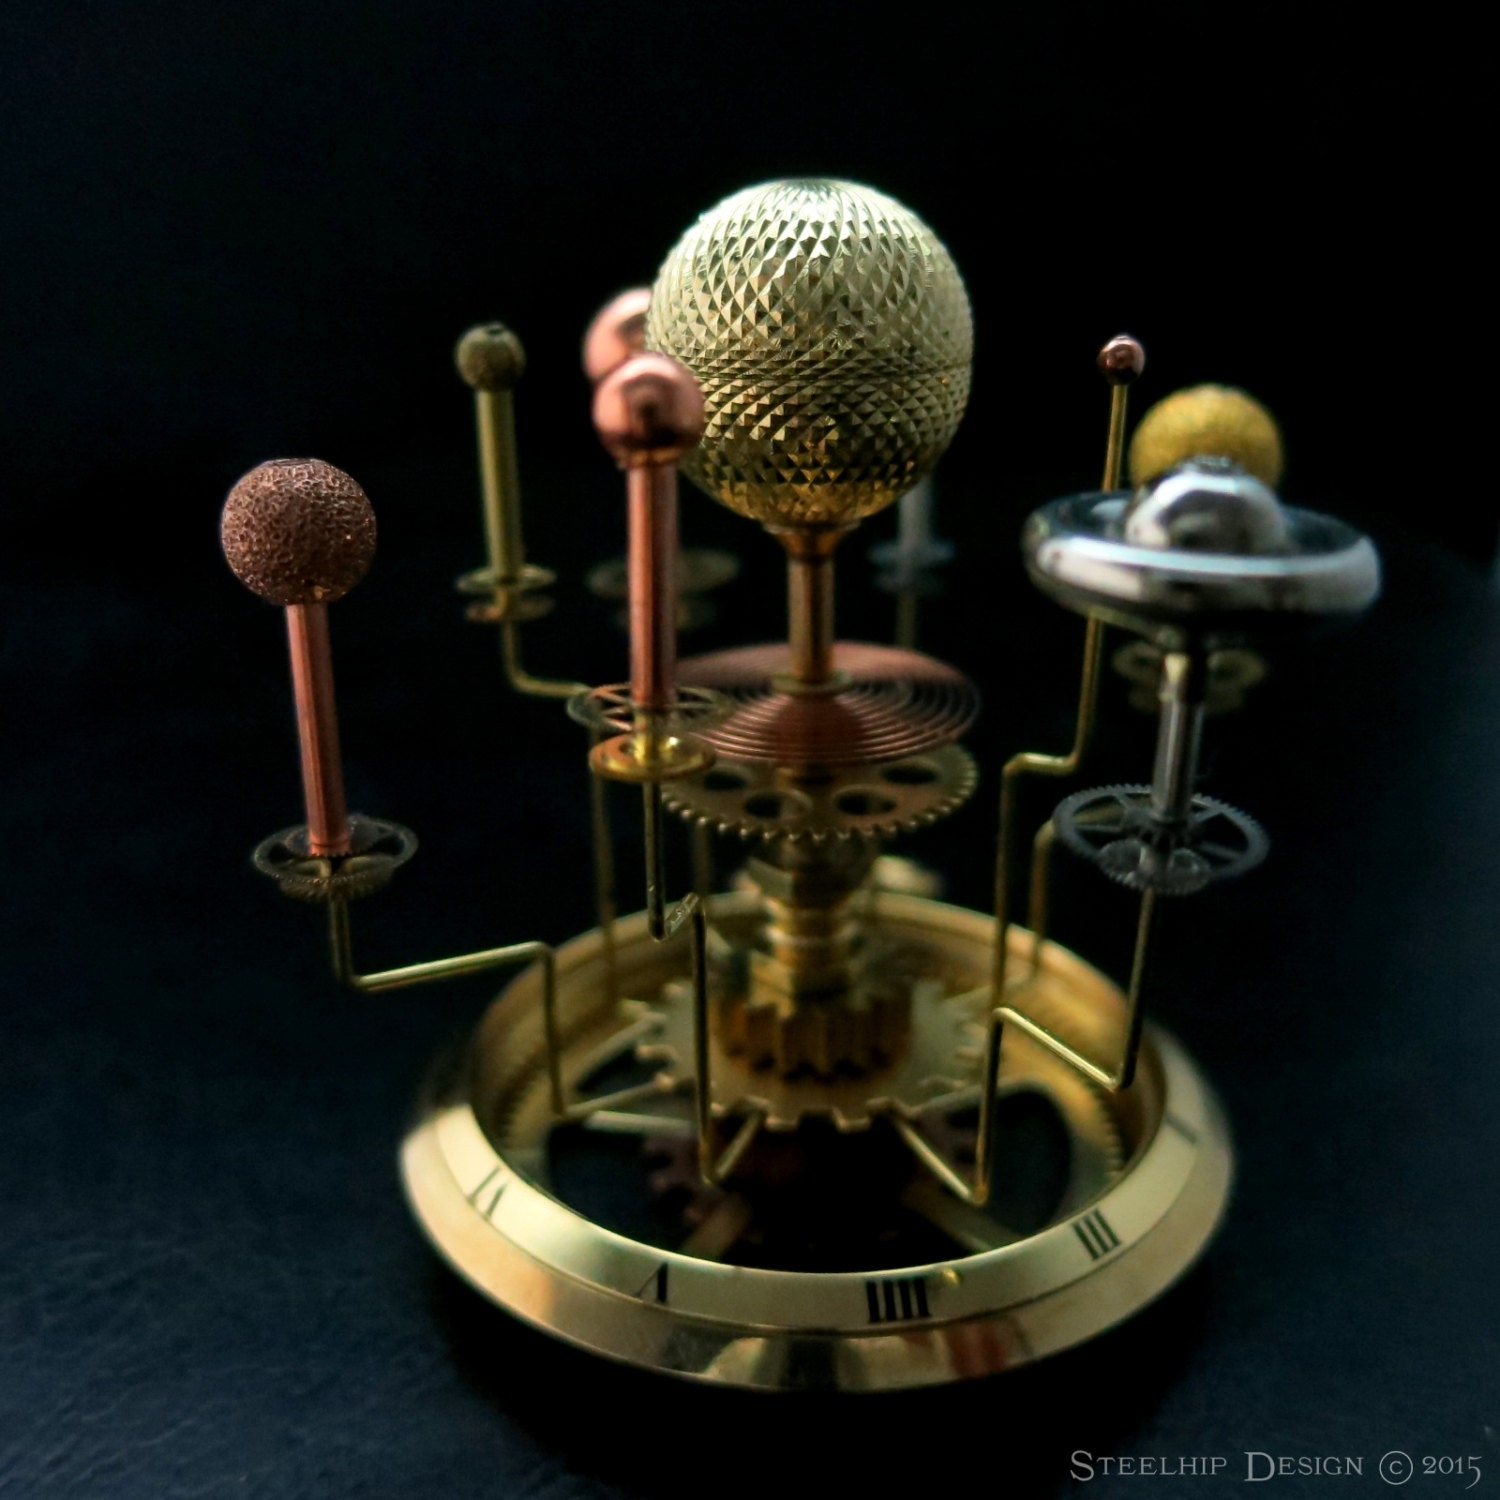 solar system orrery - photo #19